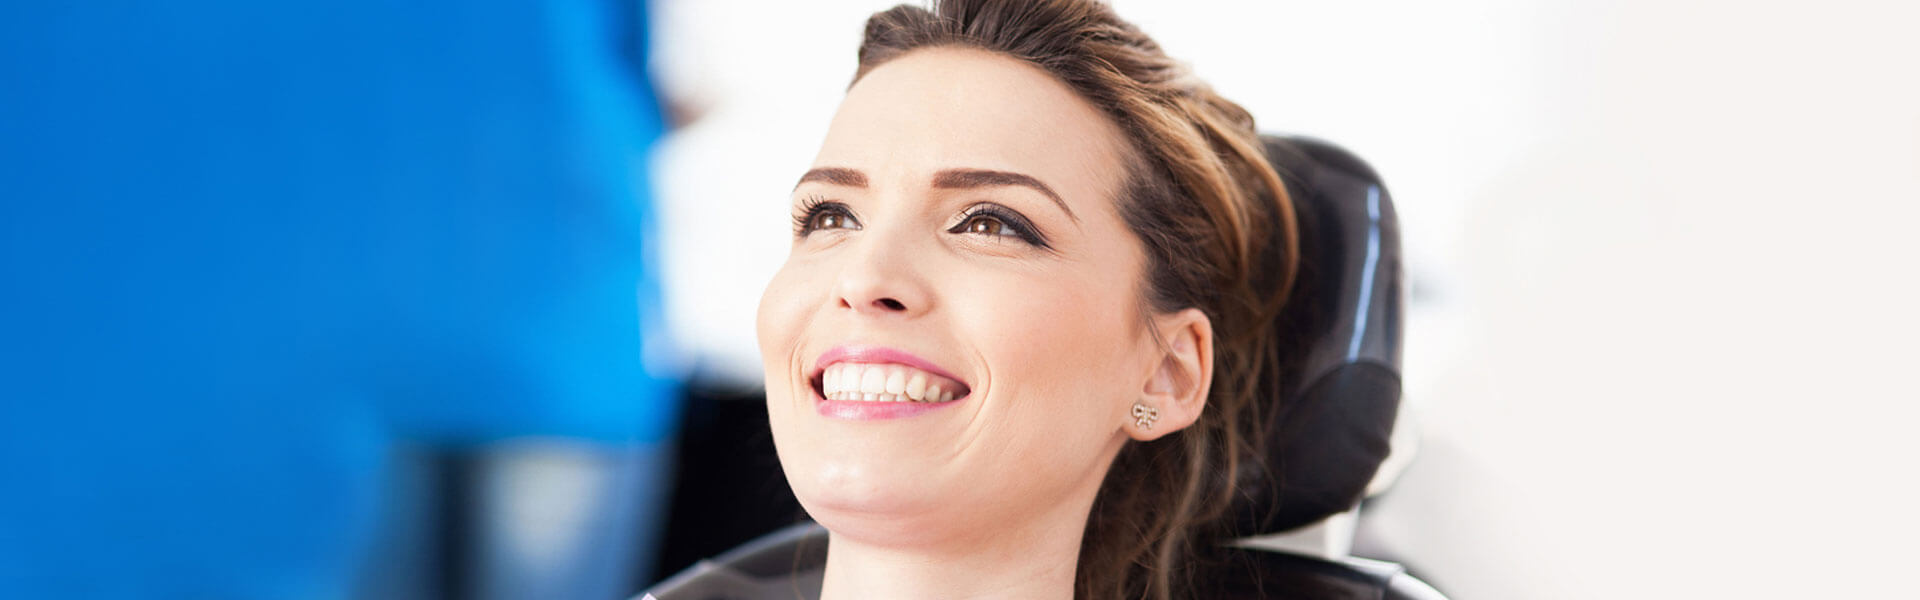 Professional Teeth Whitening for Dazzling Smile